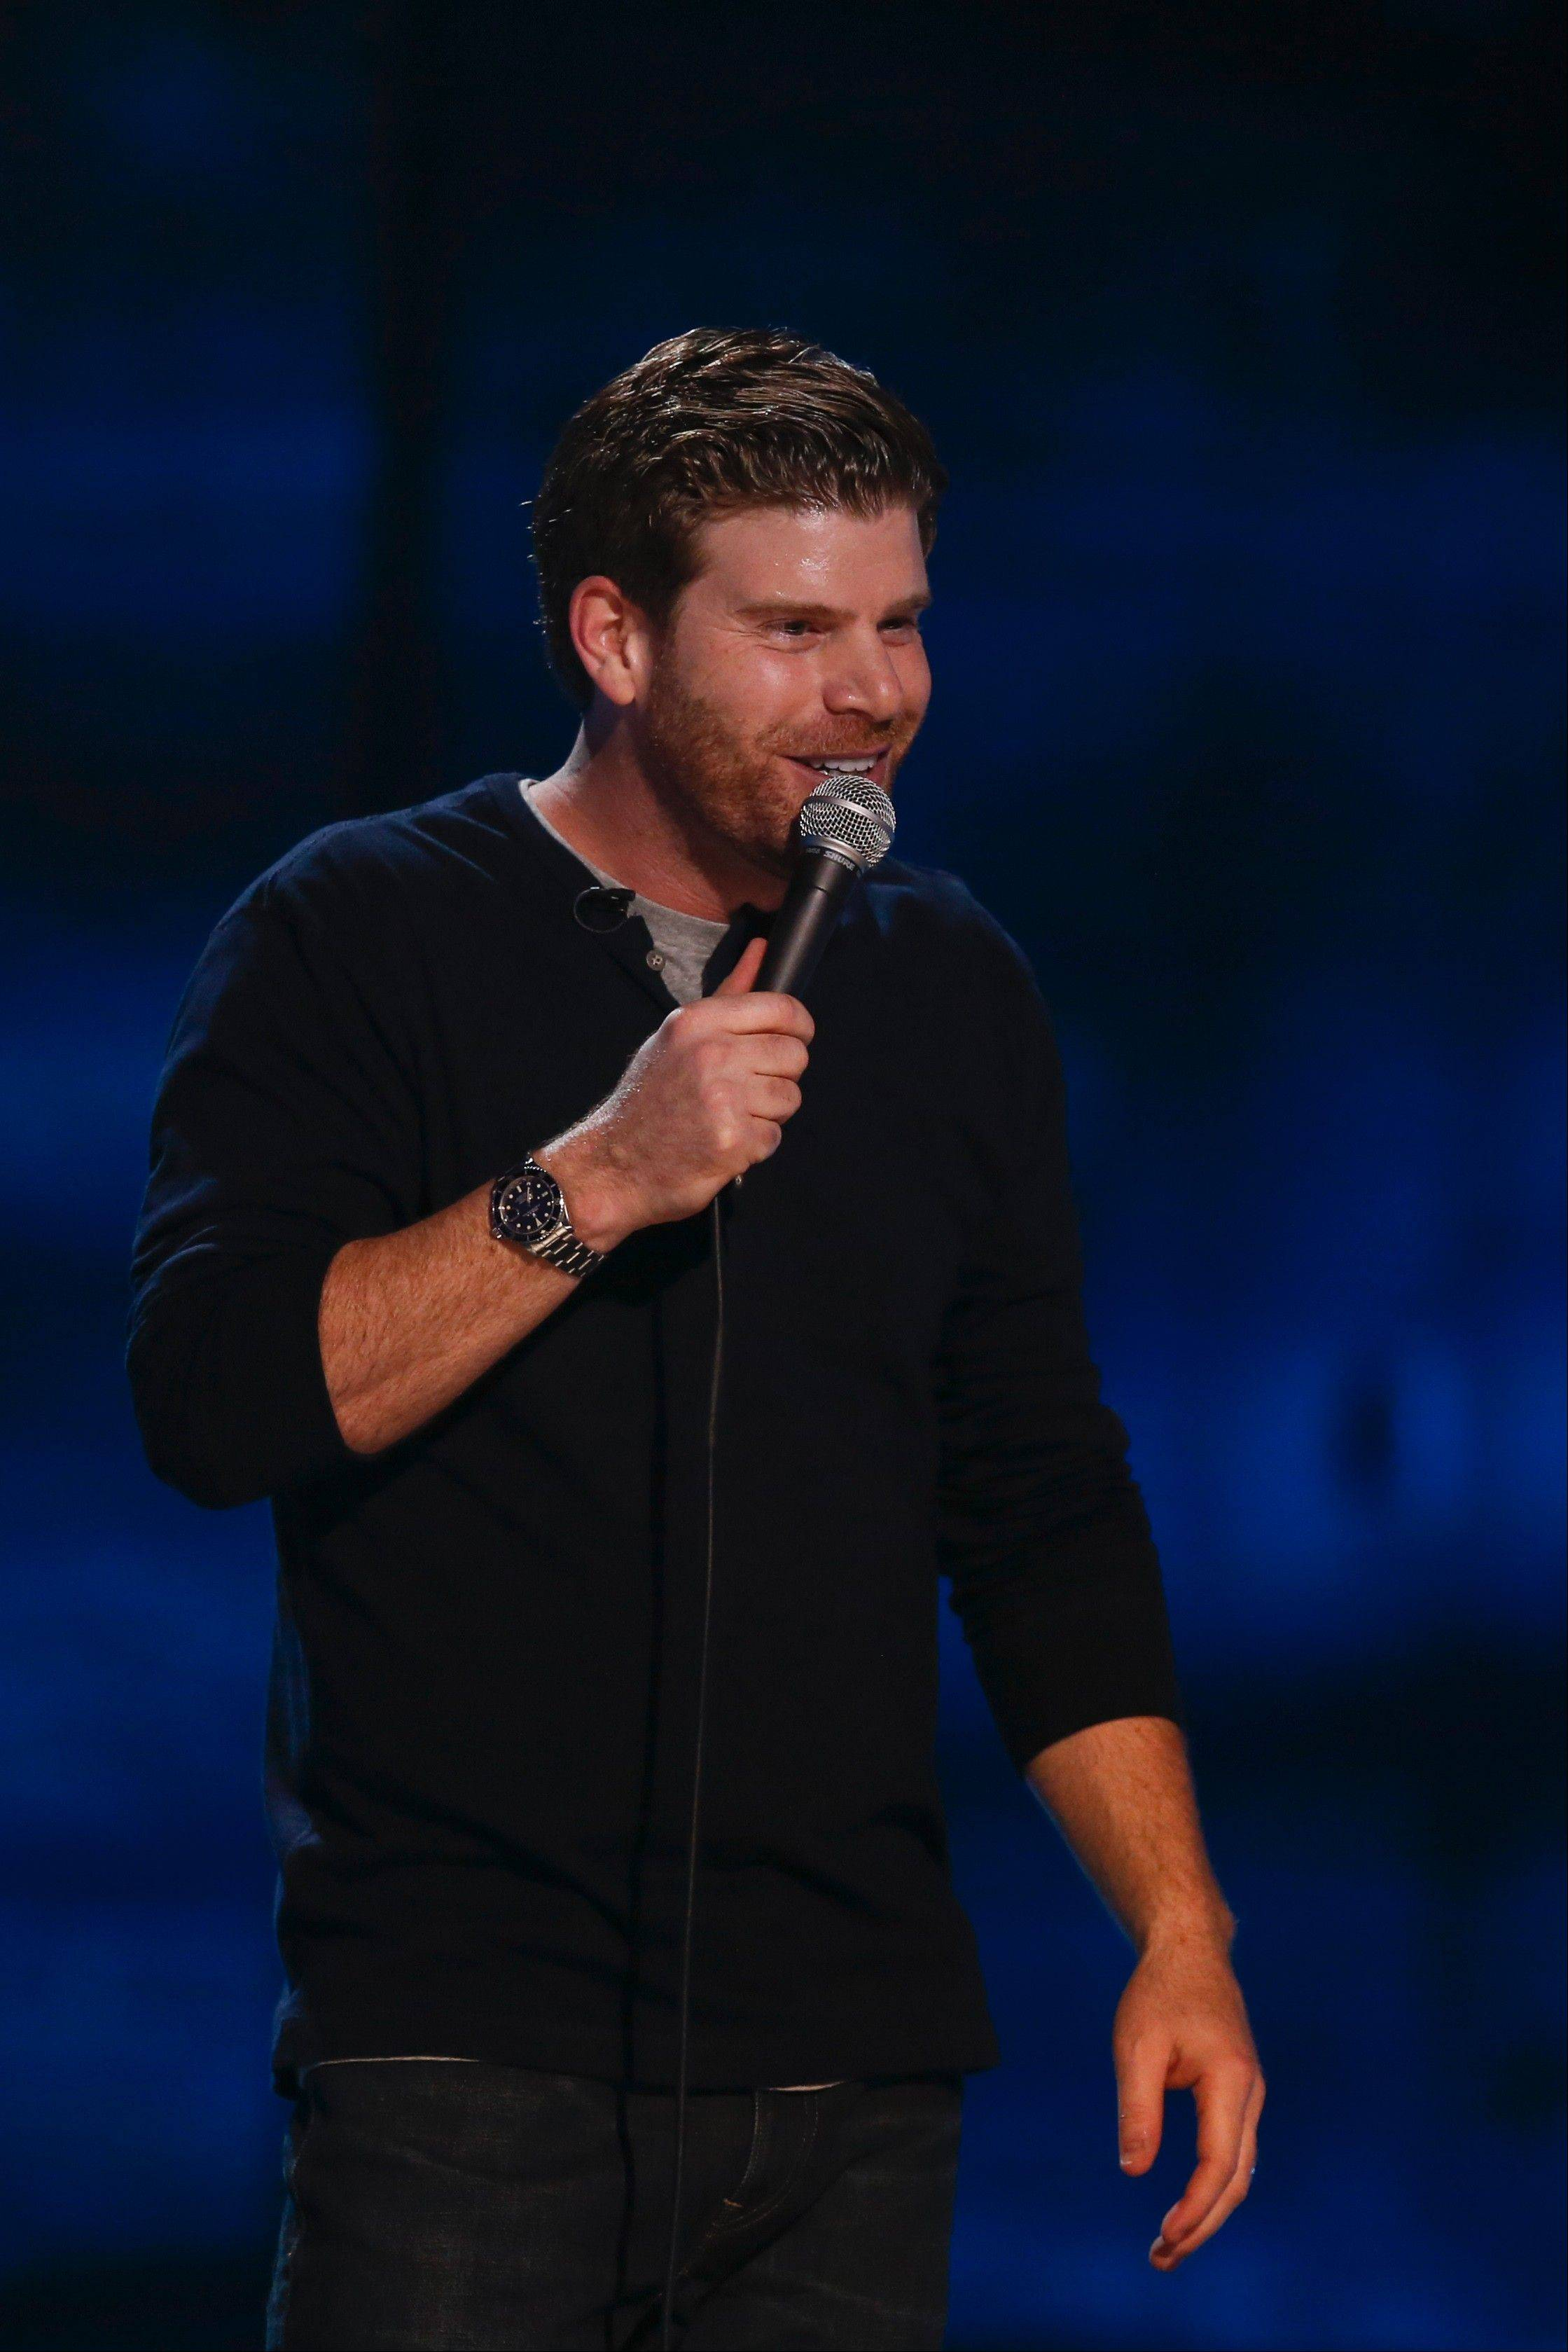 Comedian Steve Rannazzisi appears at Zanies in Chicago and Rosemont.